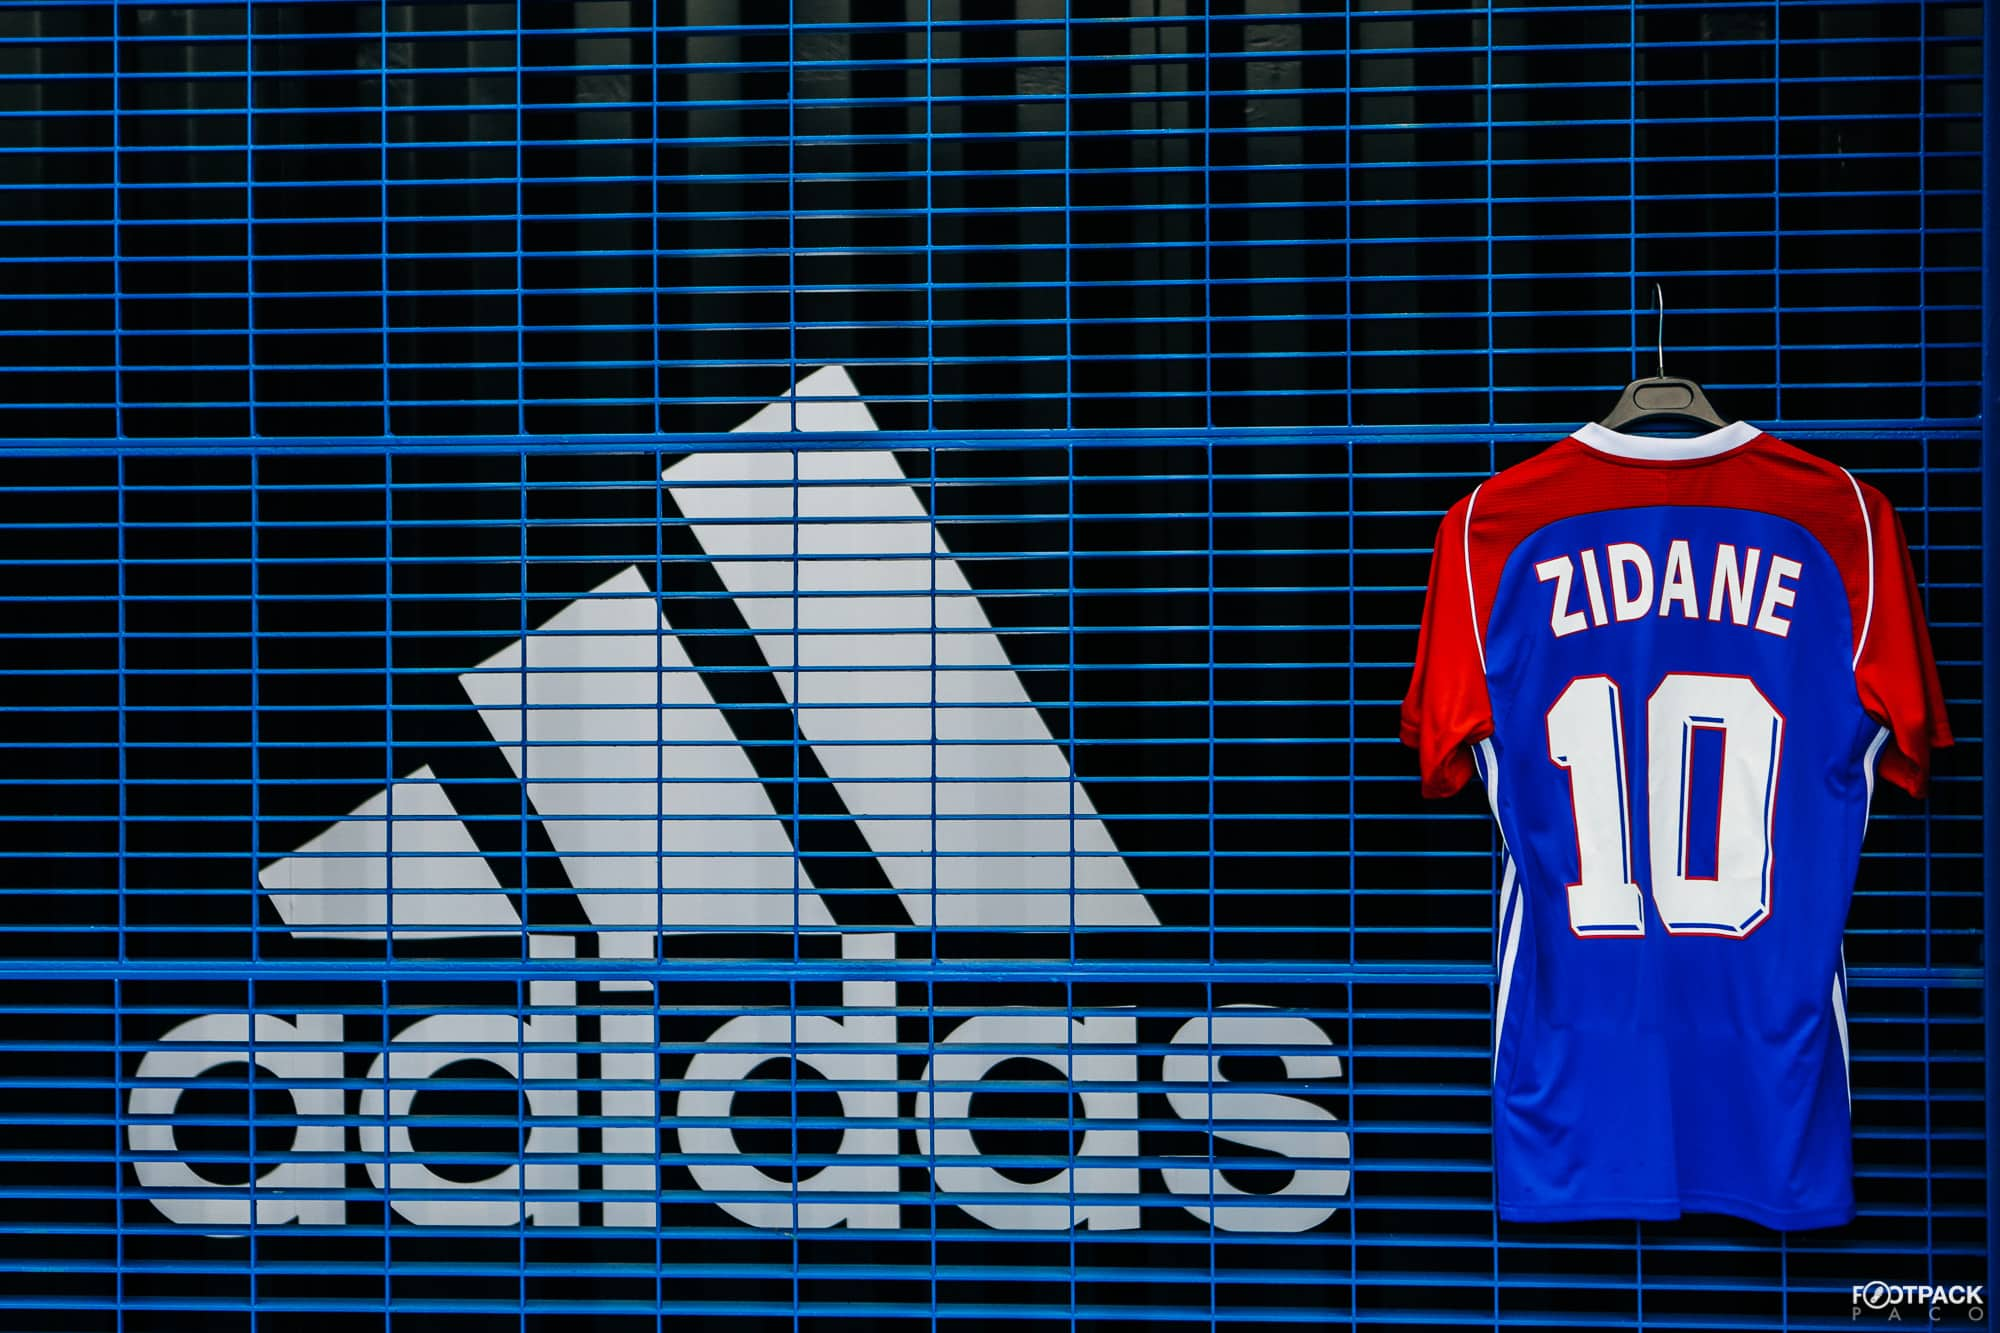 maillots-football-adidas-tango-France-98-réédition-zidane-juin-2018